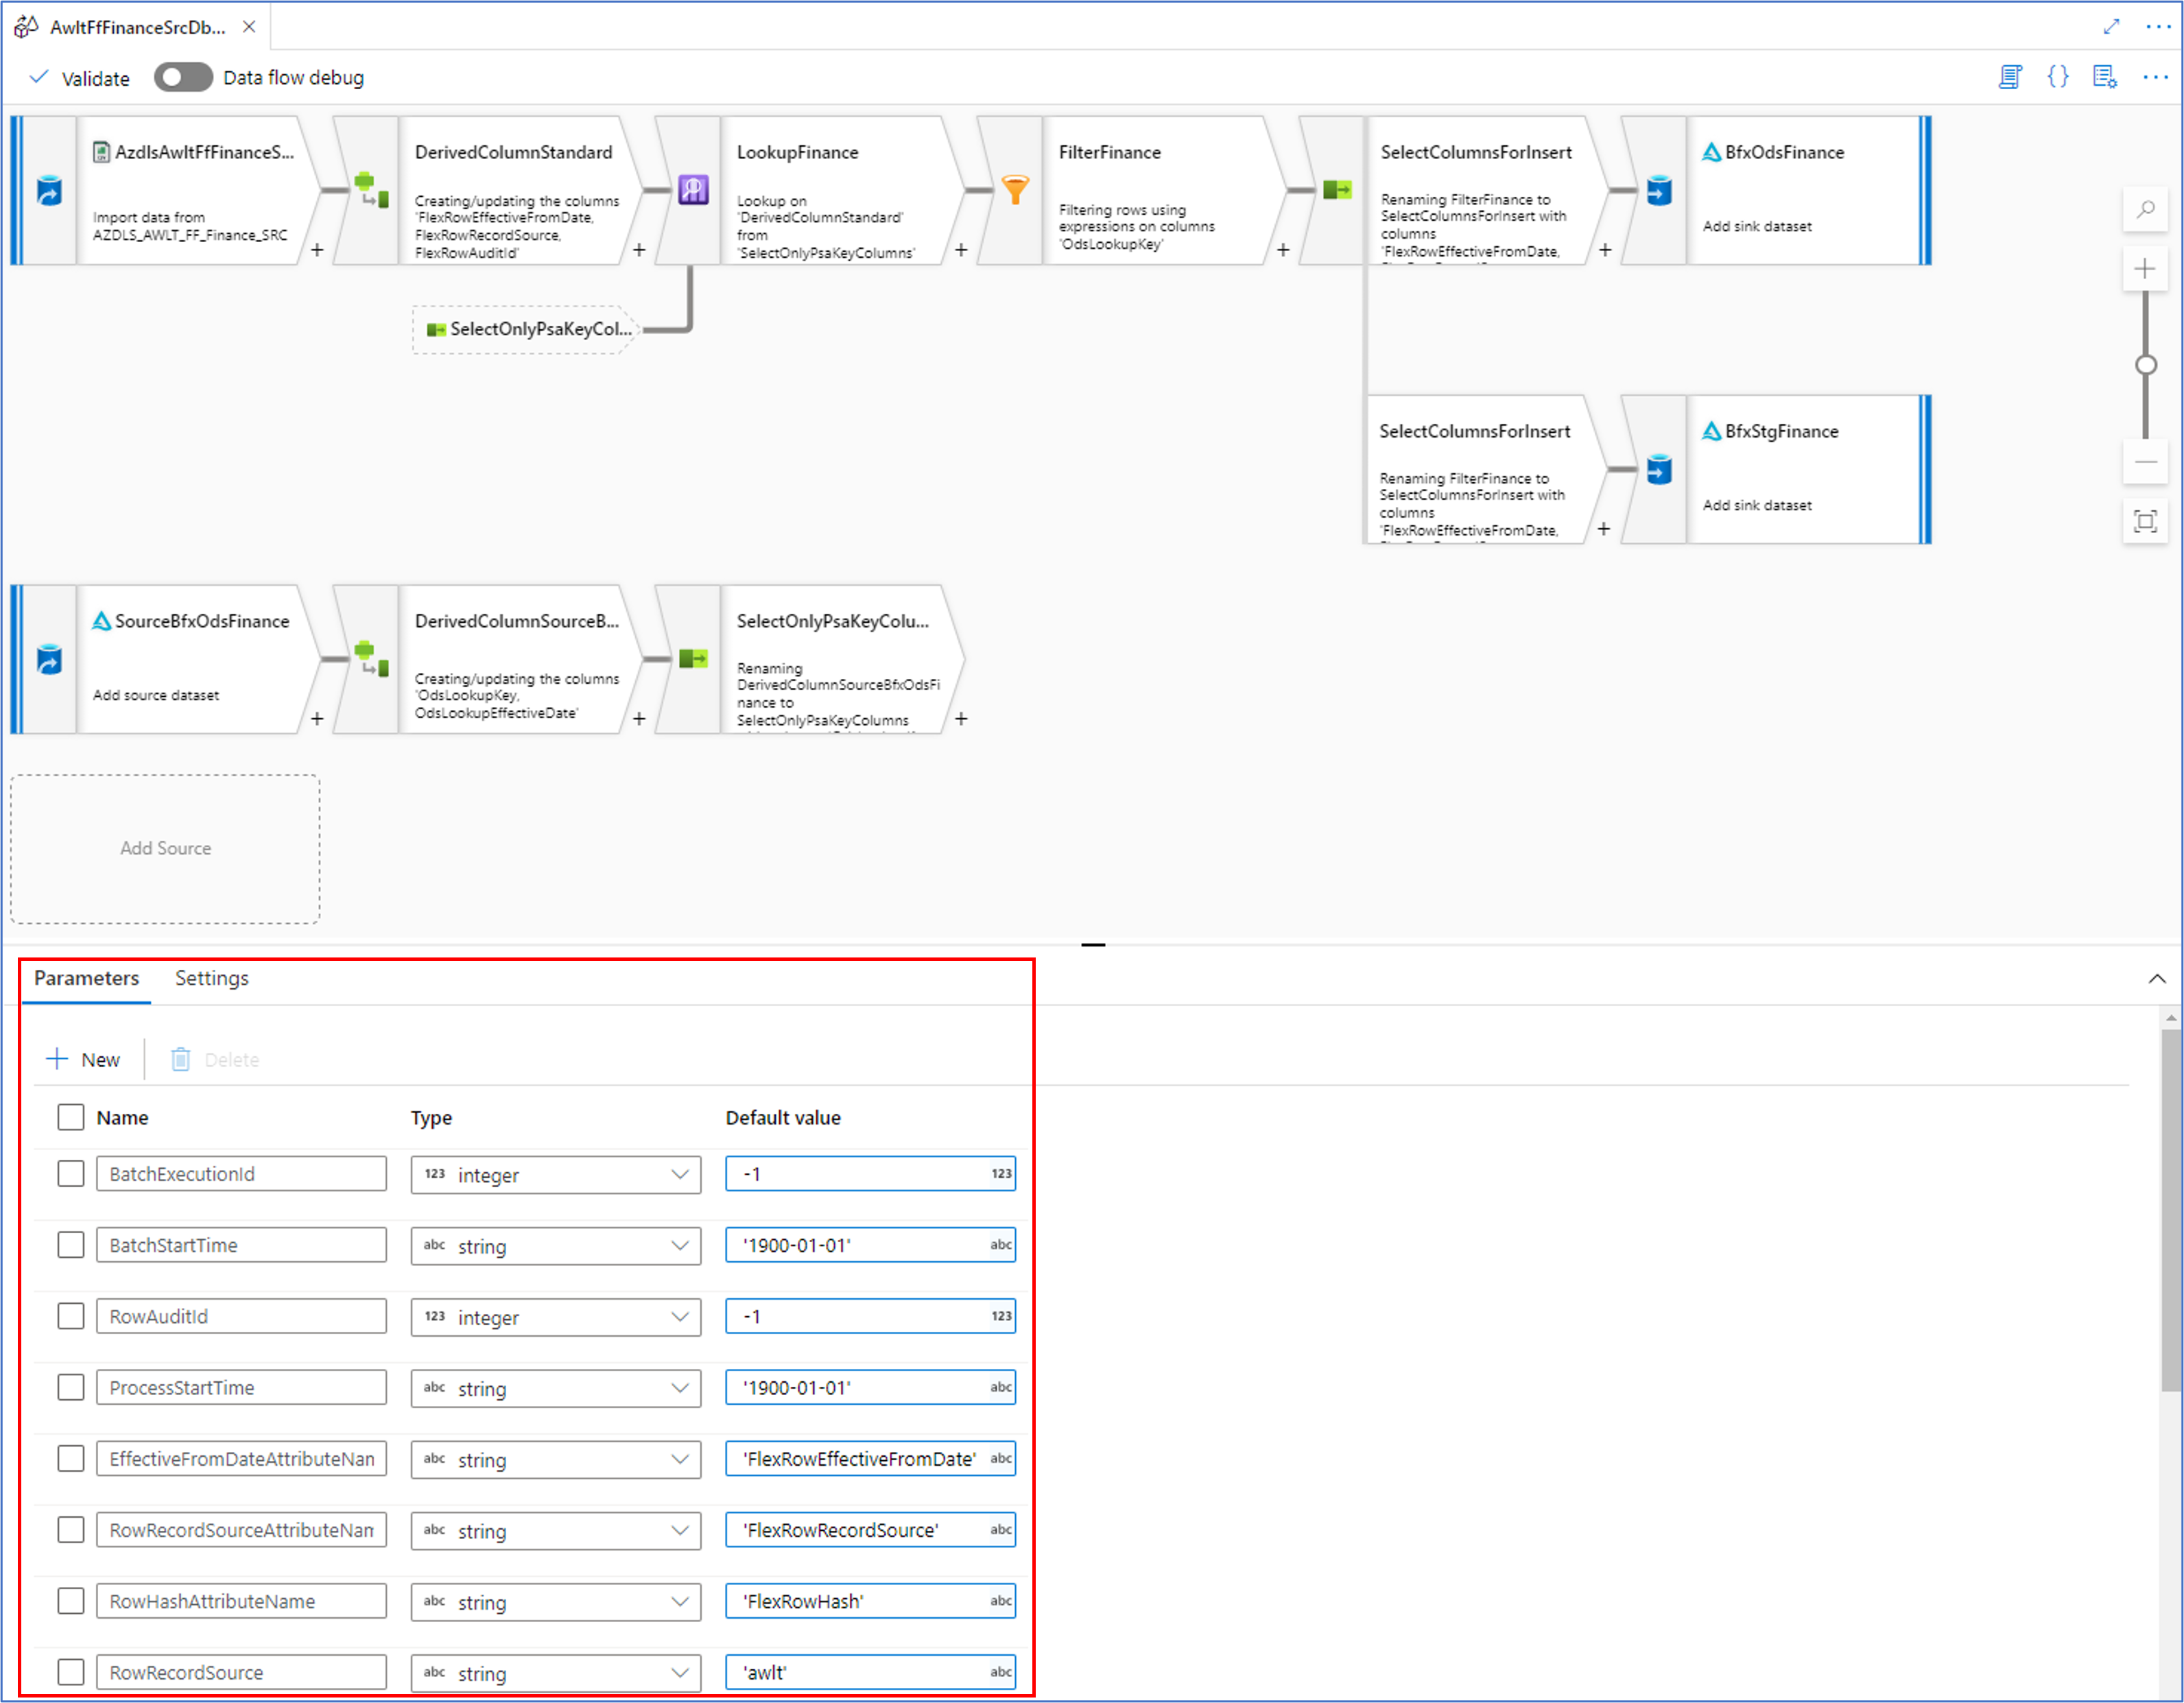 Data Flow Mapping Parameters